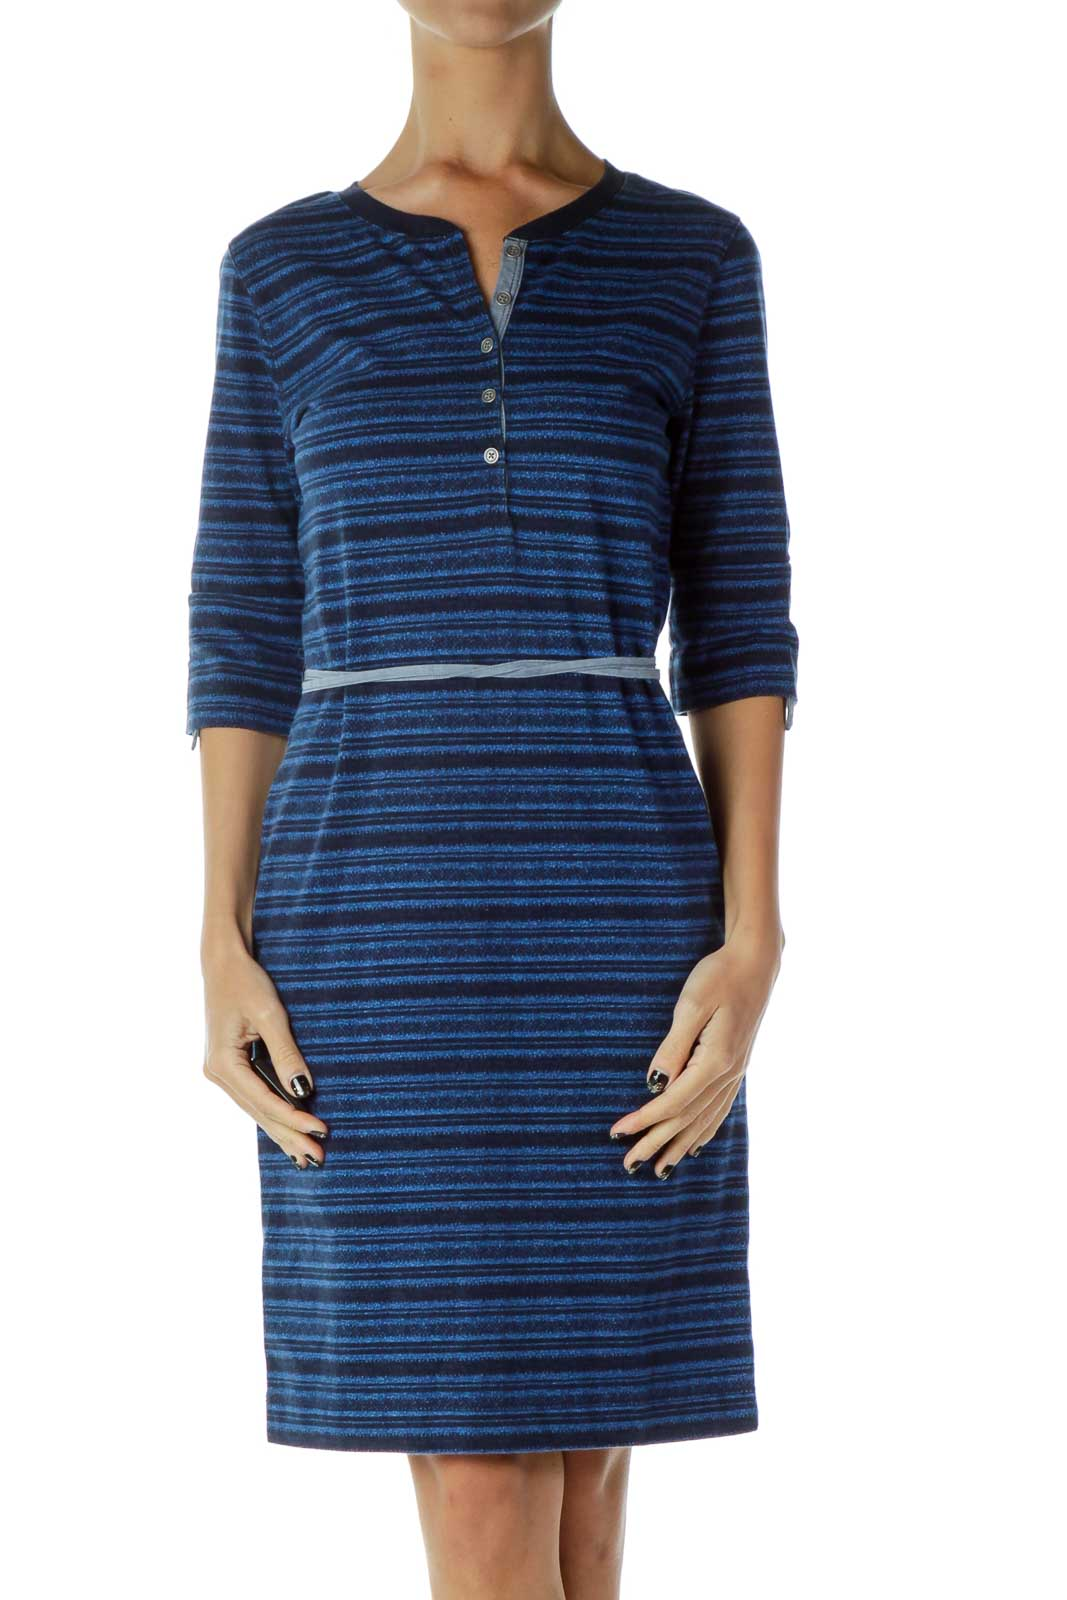 Blue Knit Striped Day Dress Front